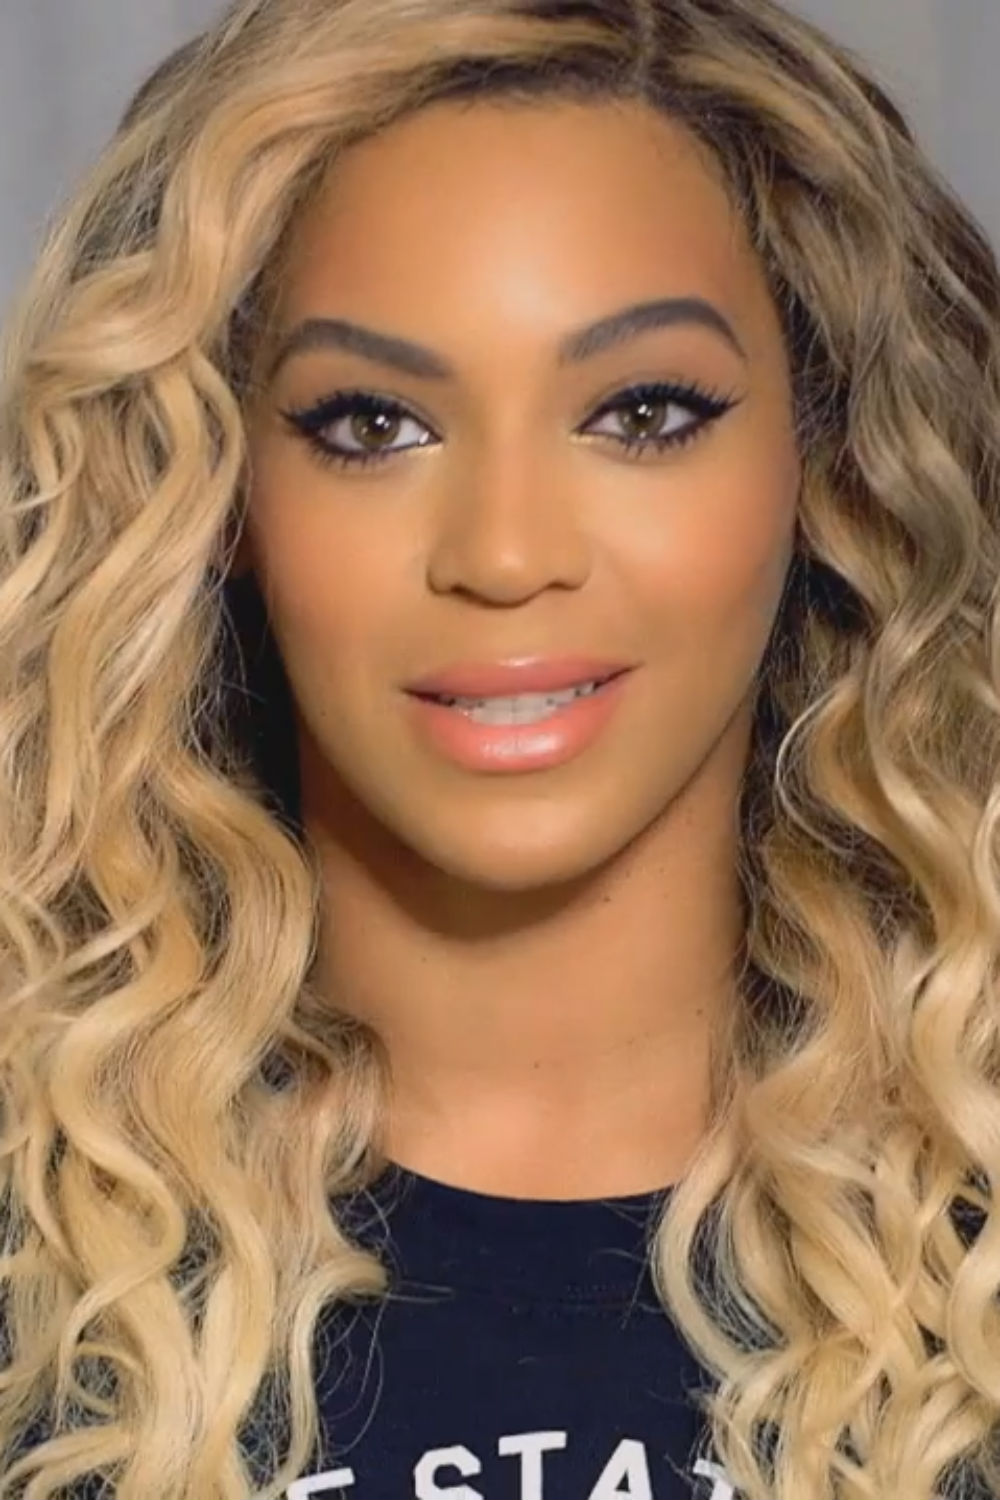 the harvard business school analyses how beyonce does business